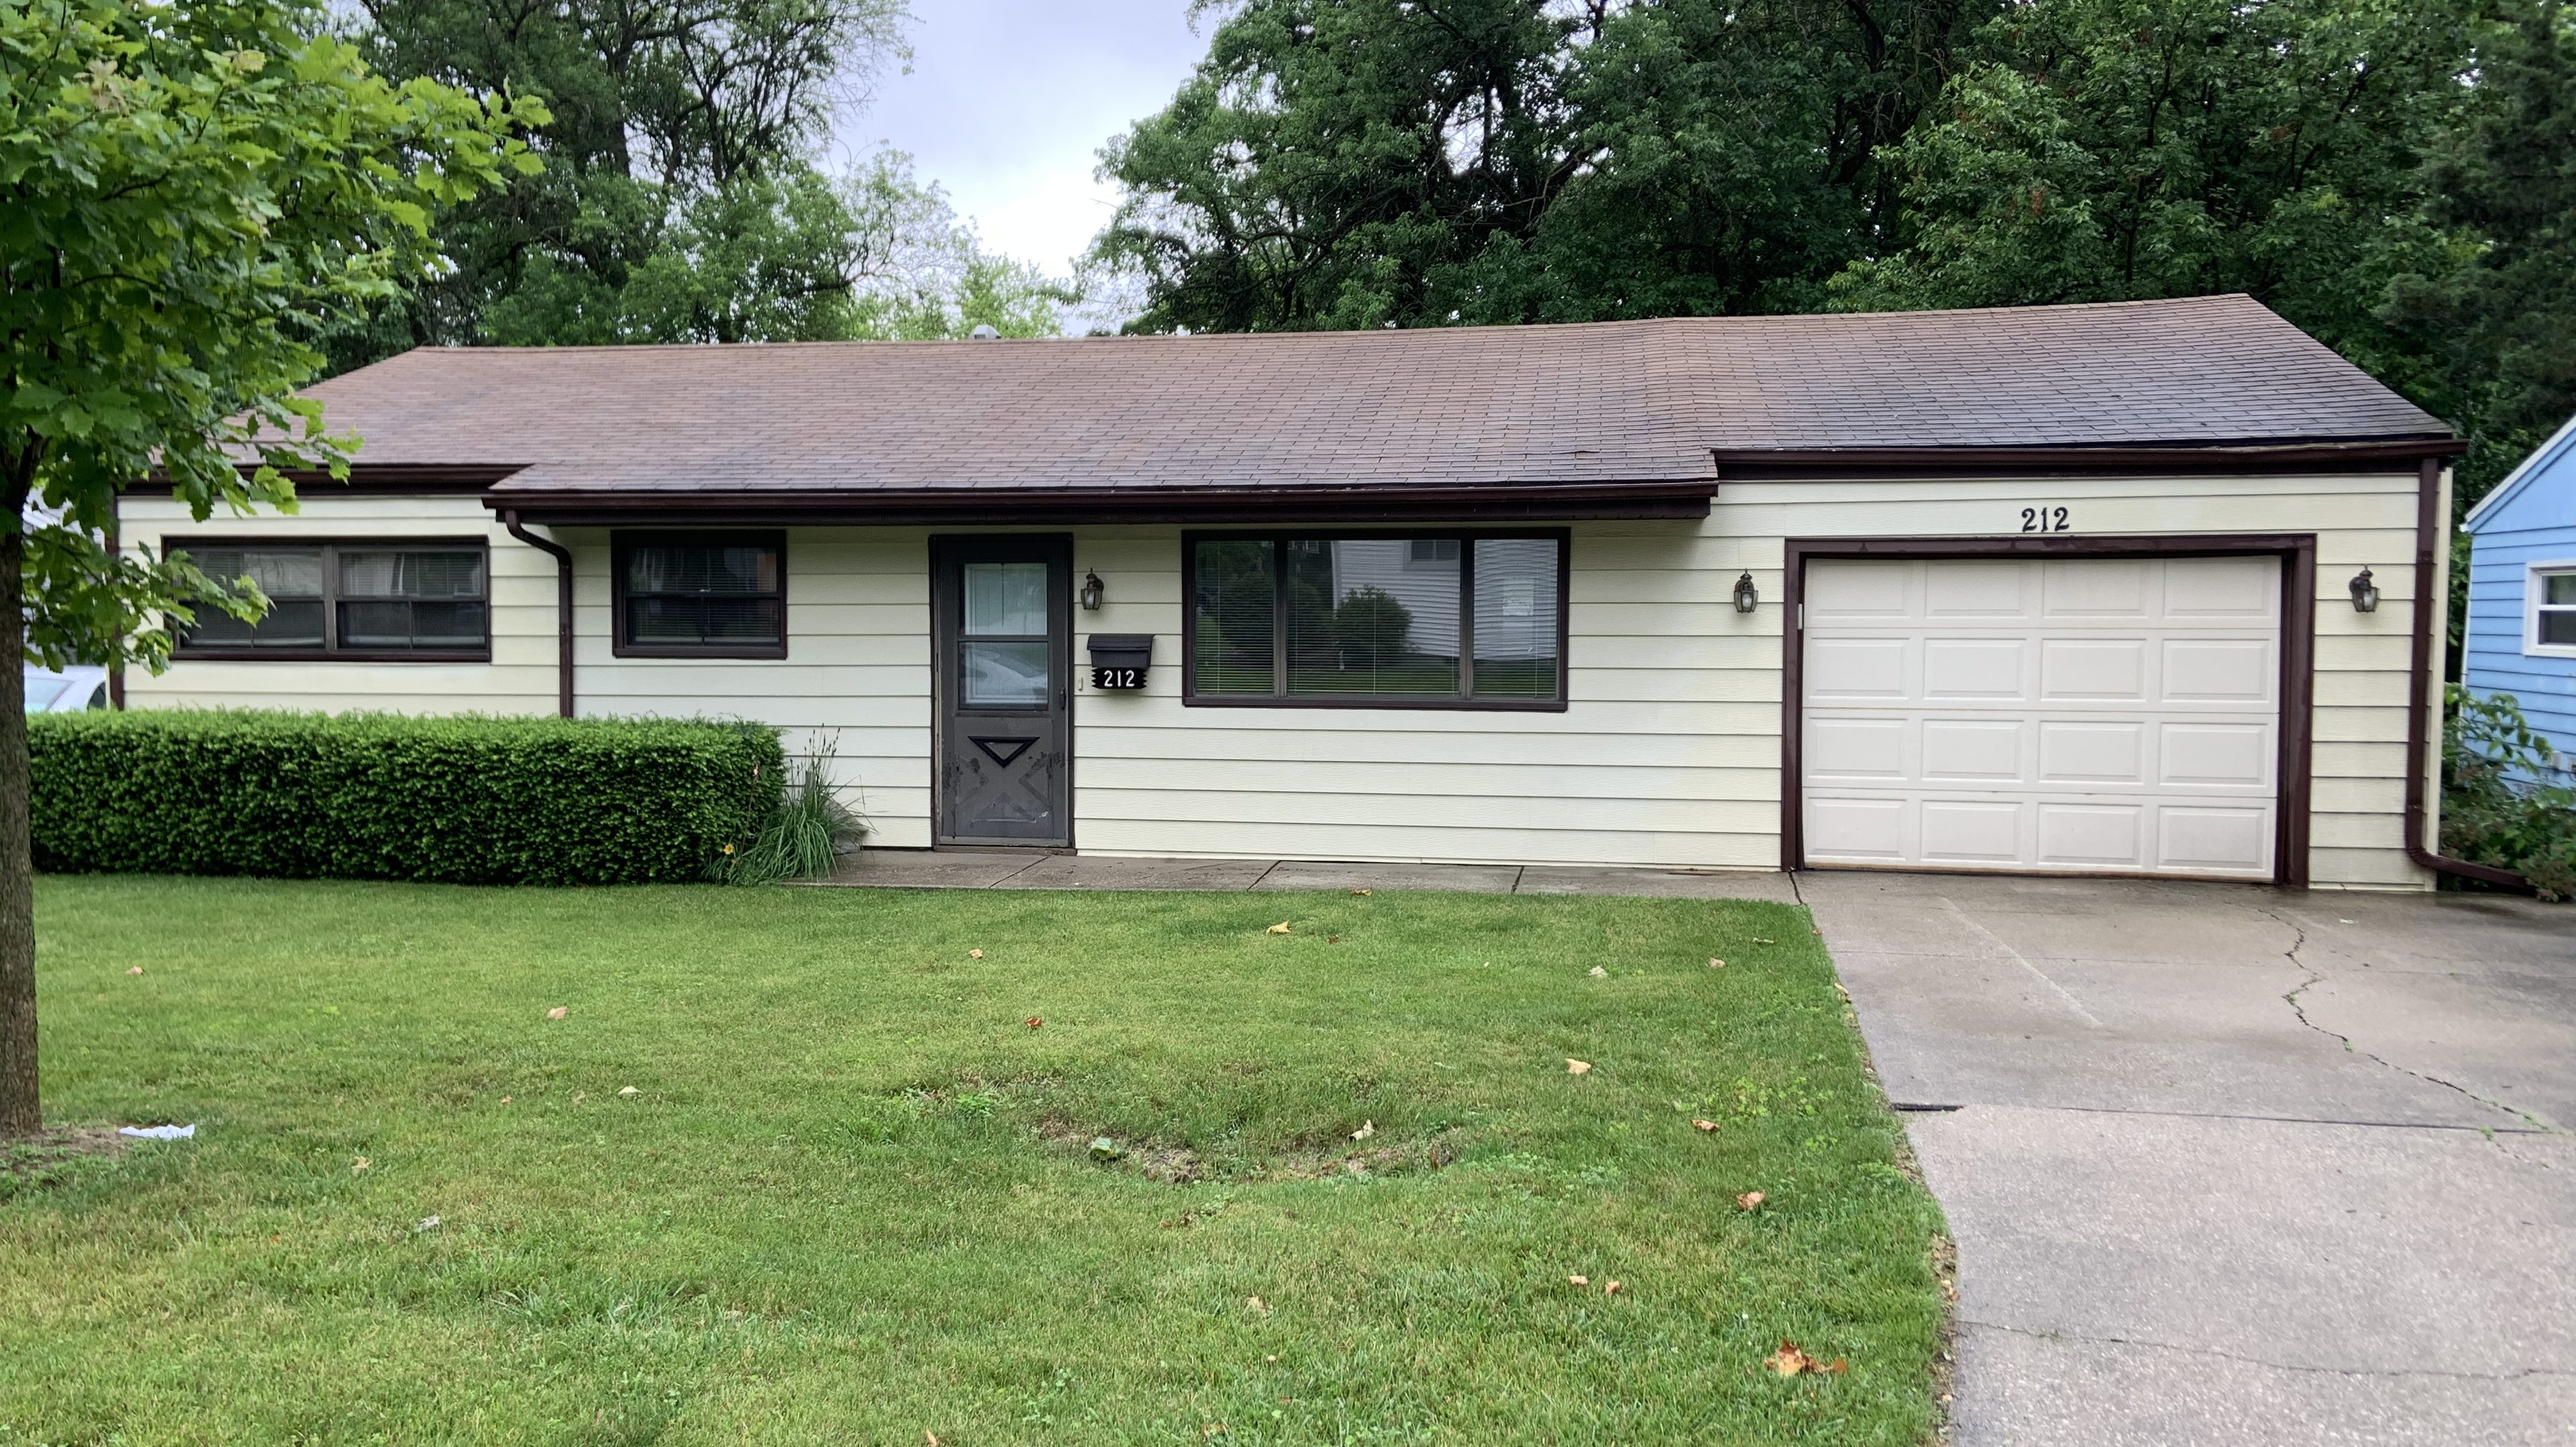 212 N. Coolidge, Normal, IL 61761